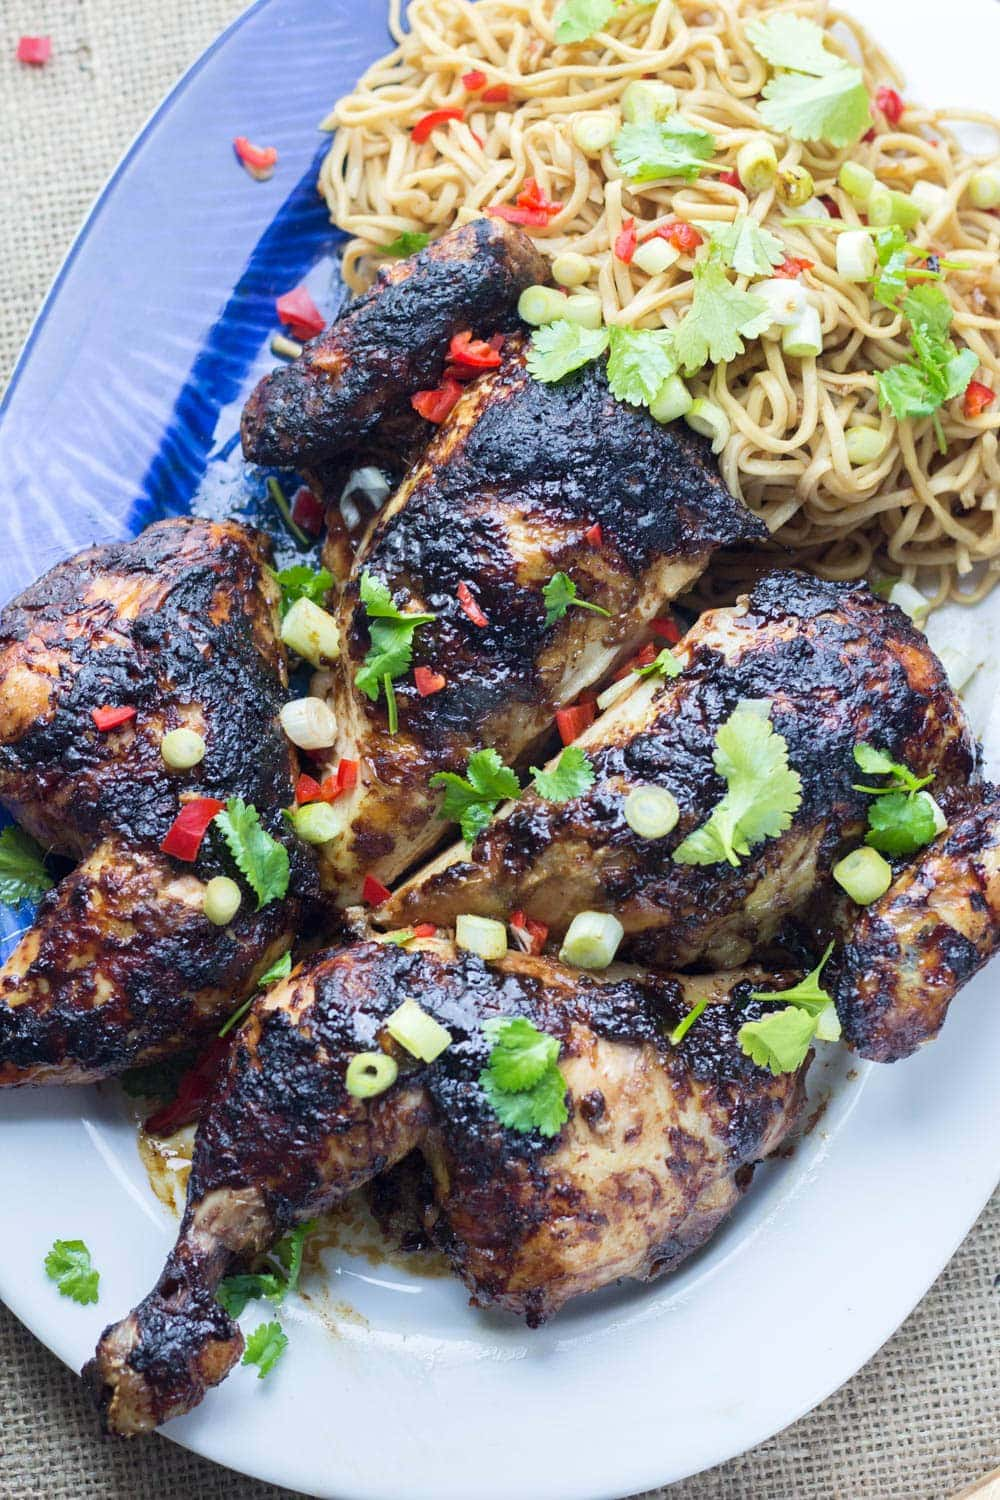 Asian Roasted Spatchcock Chicken with Noodle Salad. This Asian roasted spatchcock chicken is a great way to mix up a roast dinner. I love mine served with a refreshing noodle salad. #roastchicken #recipe #asianfood #spatchcock